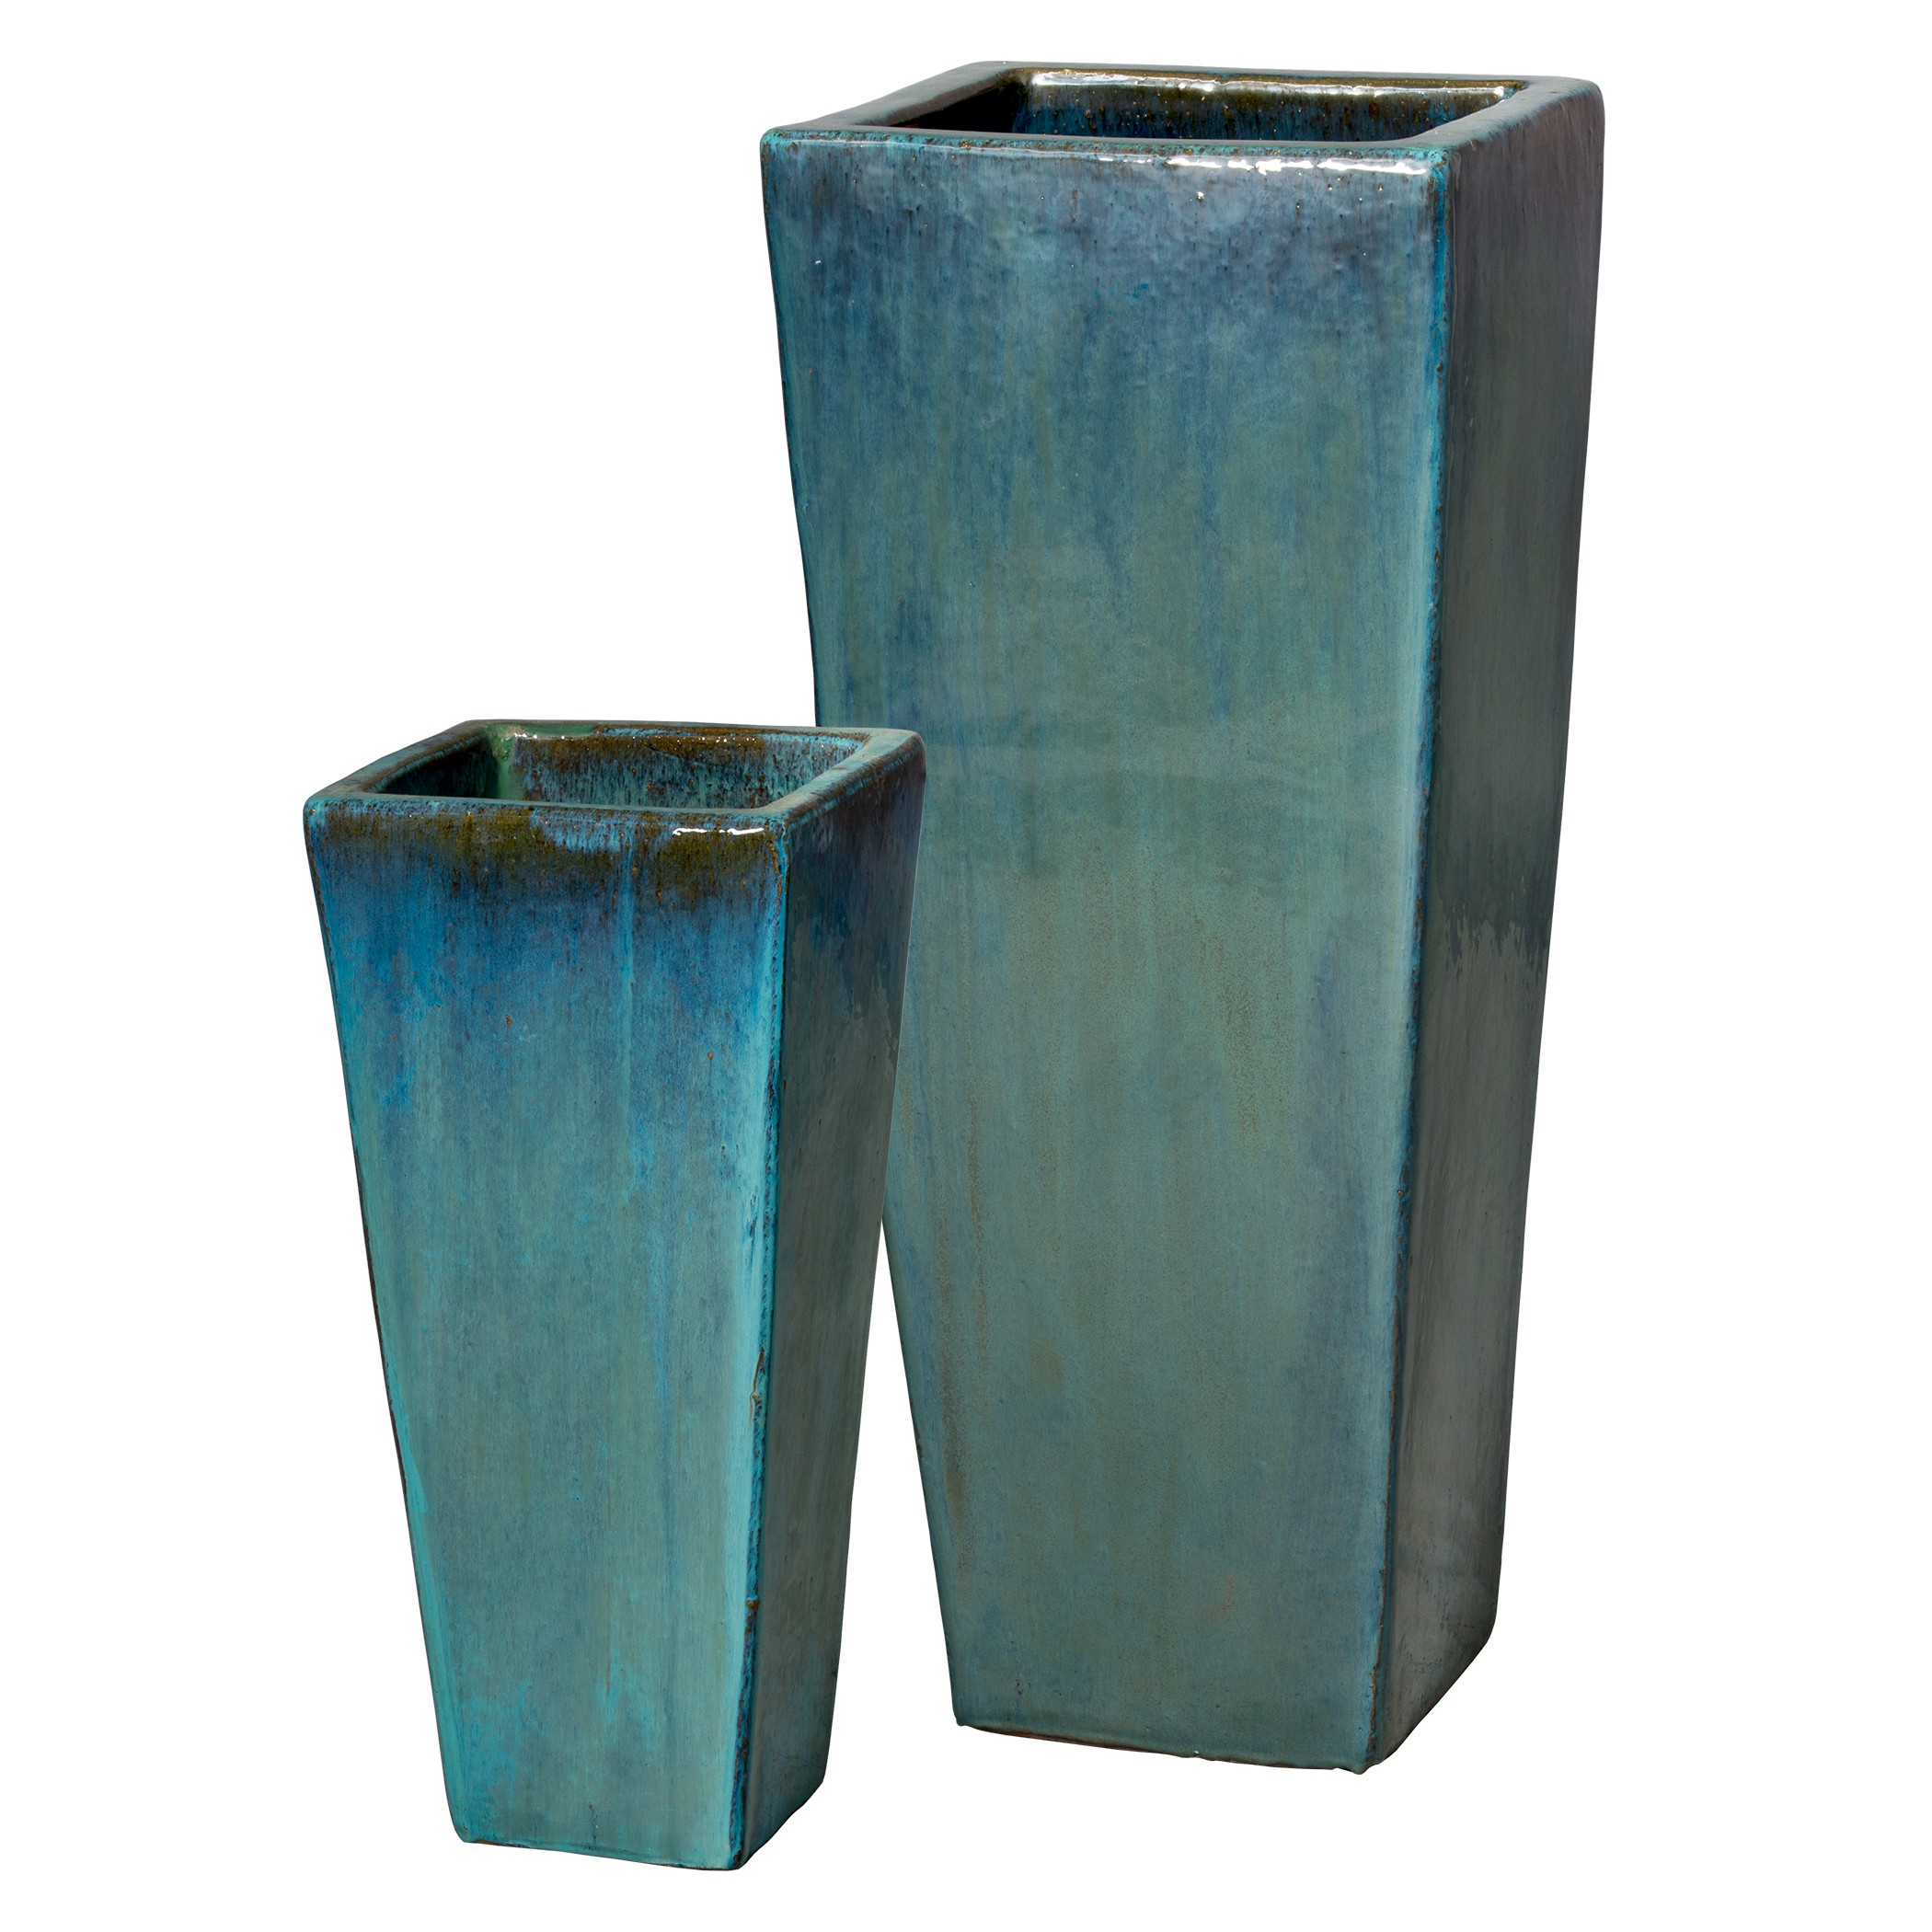 Cheap Planters | Tall Planters | Large Rectangular Planters